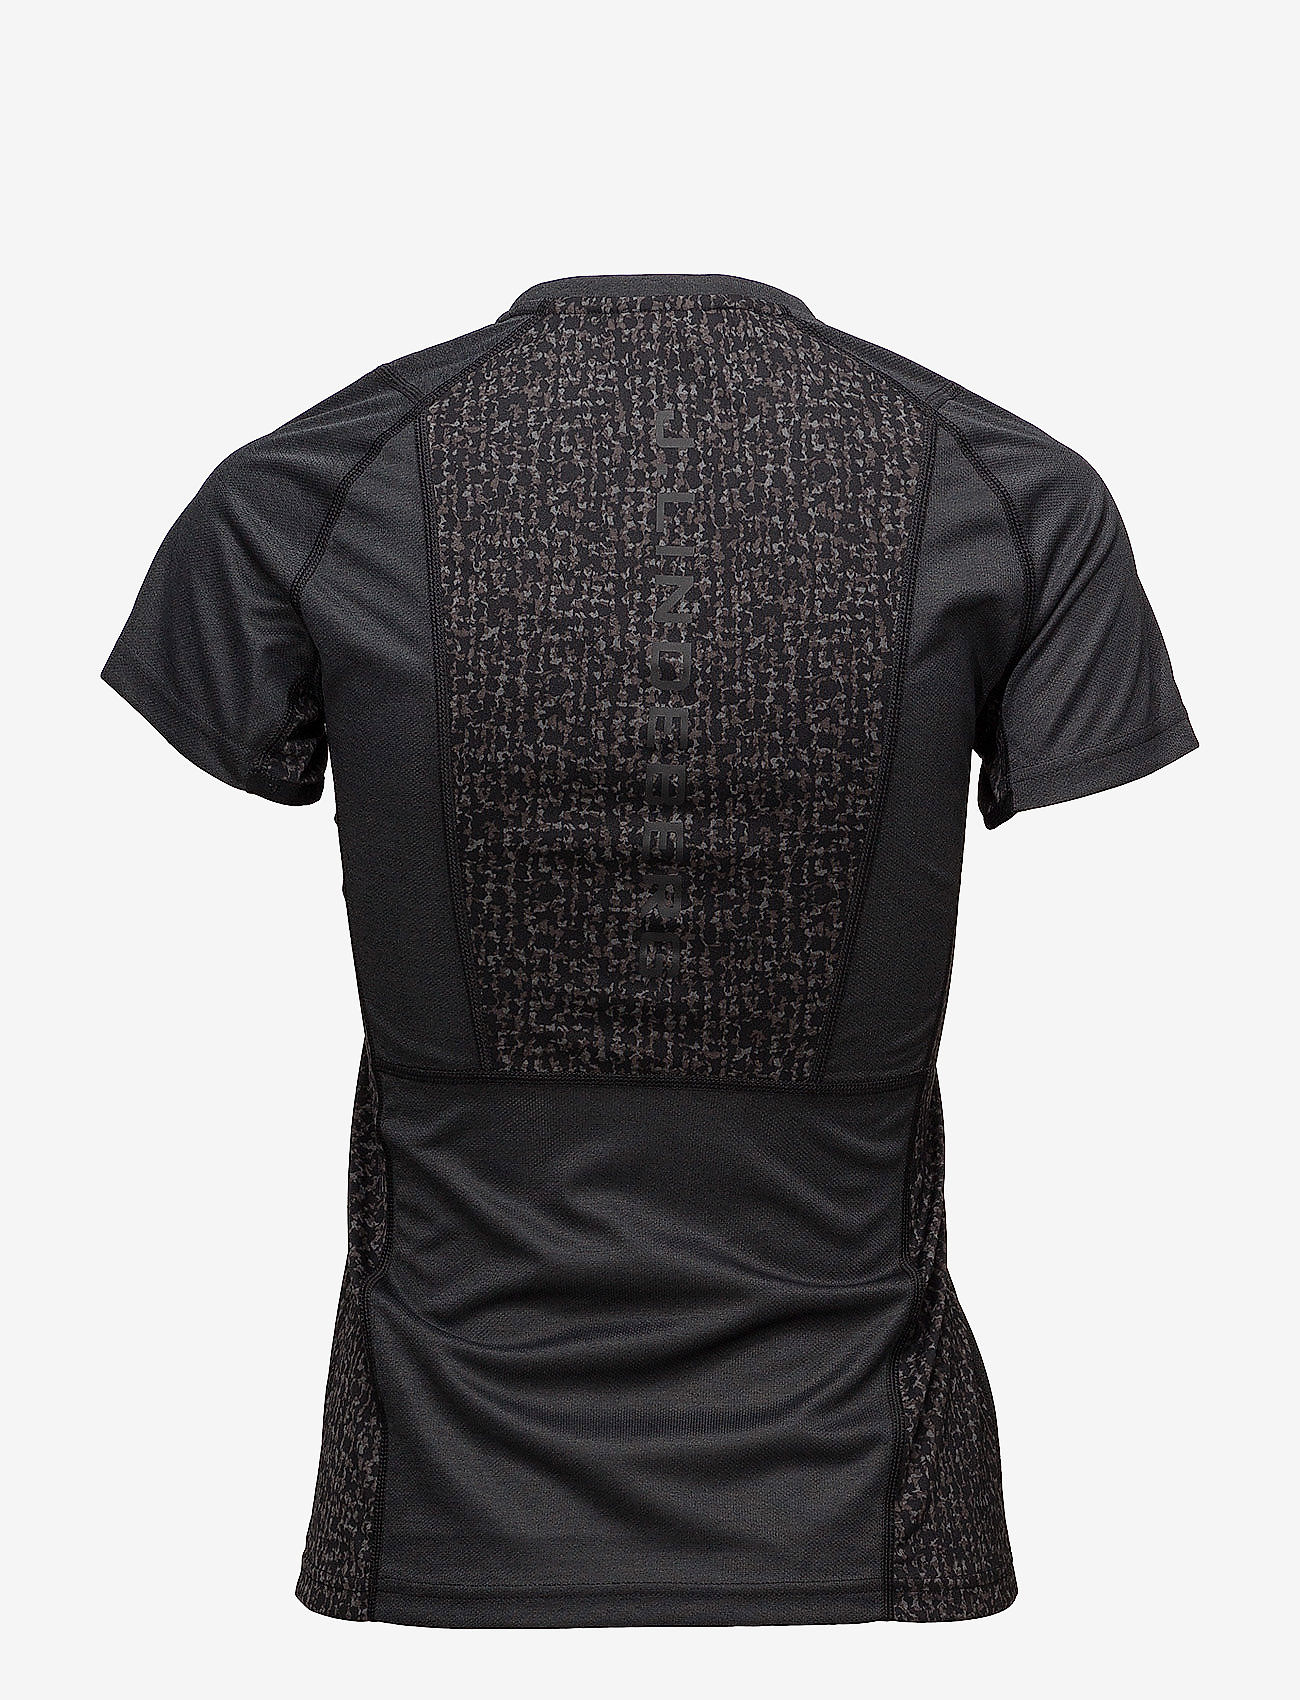 J. Lindeberg W Active Tee Elements Jersey - T-shirts & Tops